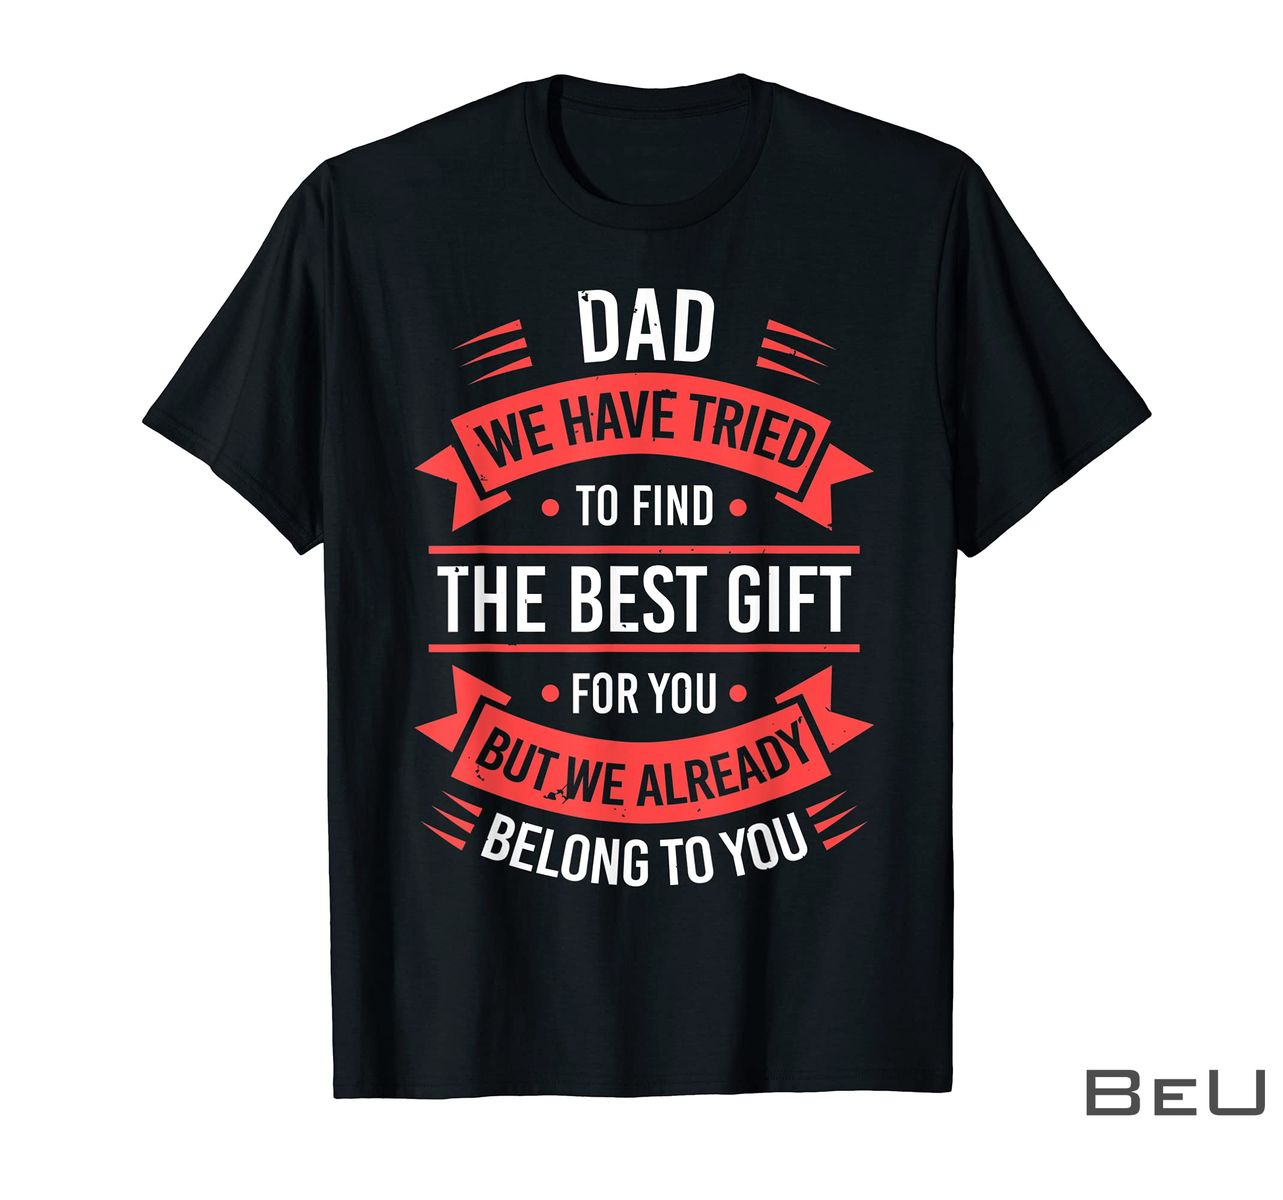 Dad We Have Tried To Find The Best Gift For You But We Already Belong To You Shirt